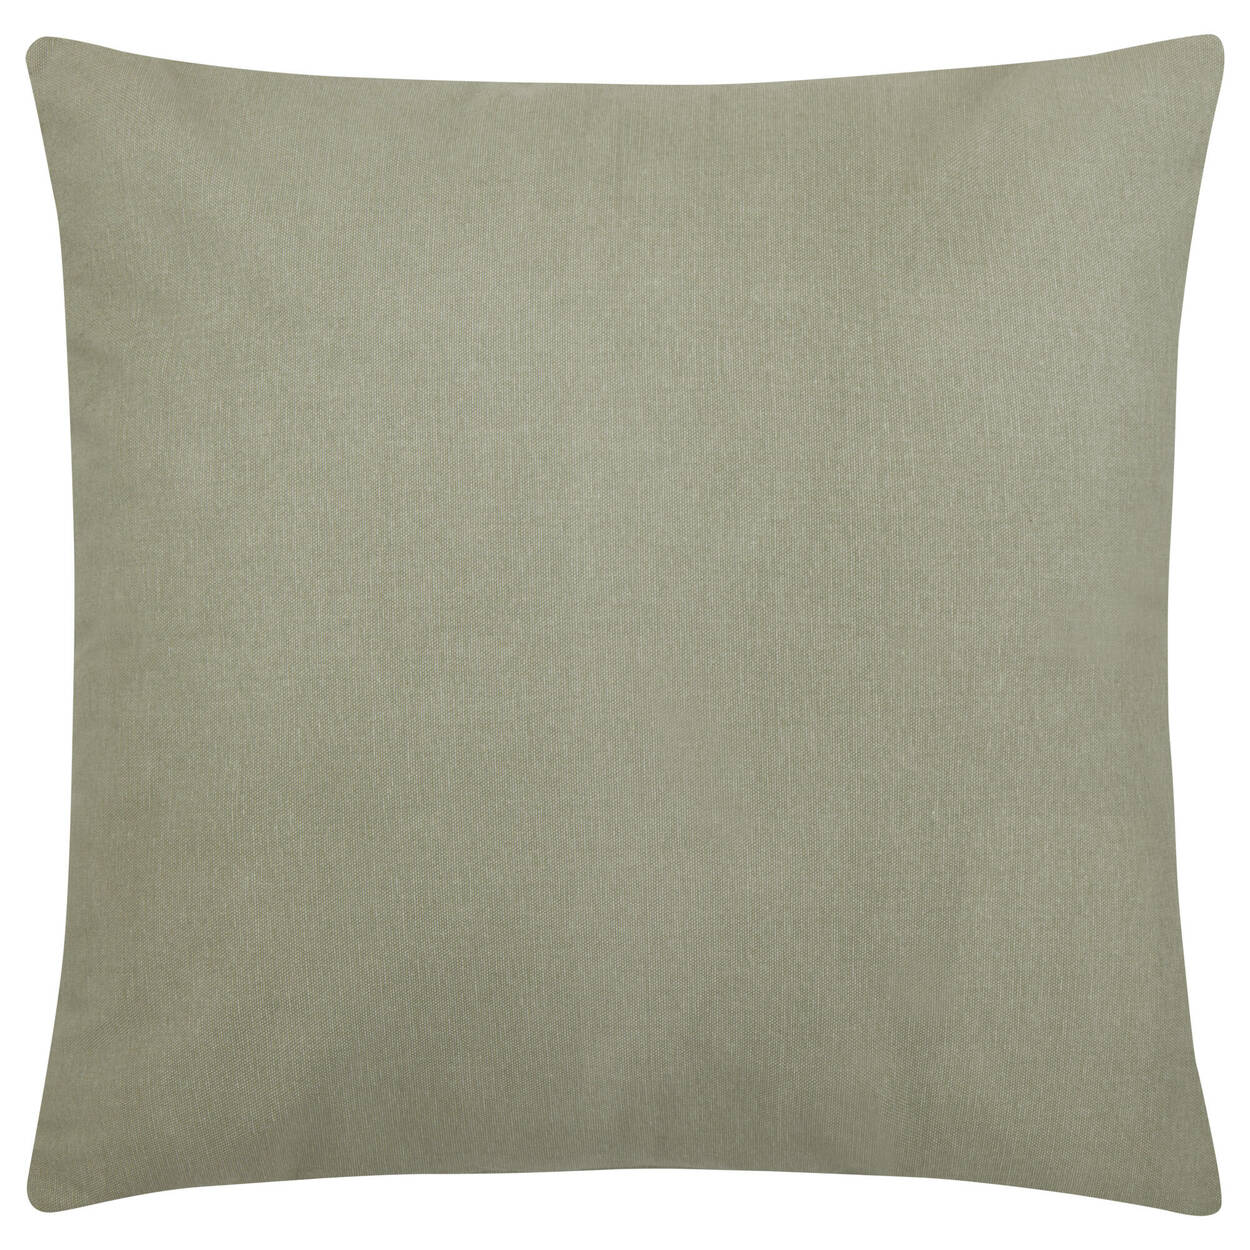 "Leaf Printed Imogen Decorative Pillow 19"" x 19"""